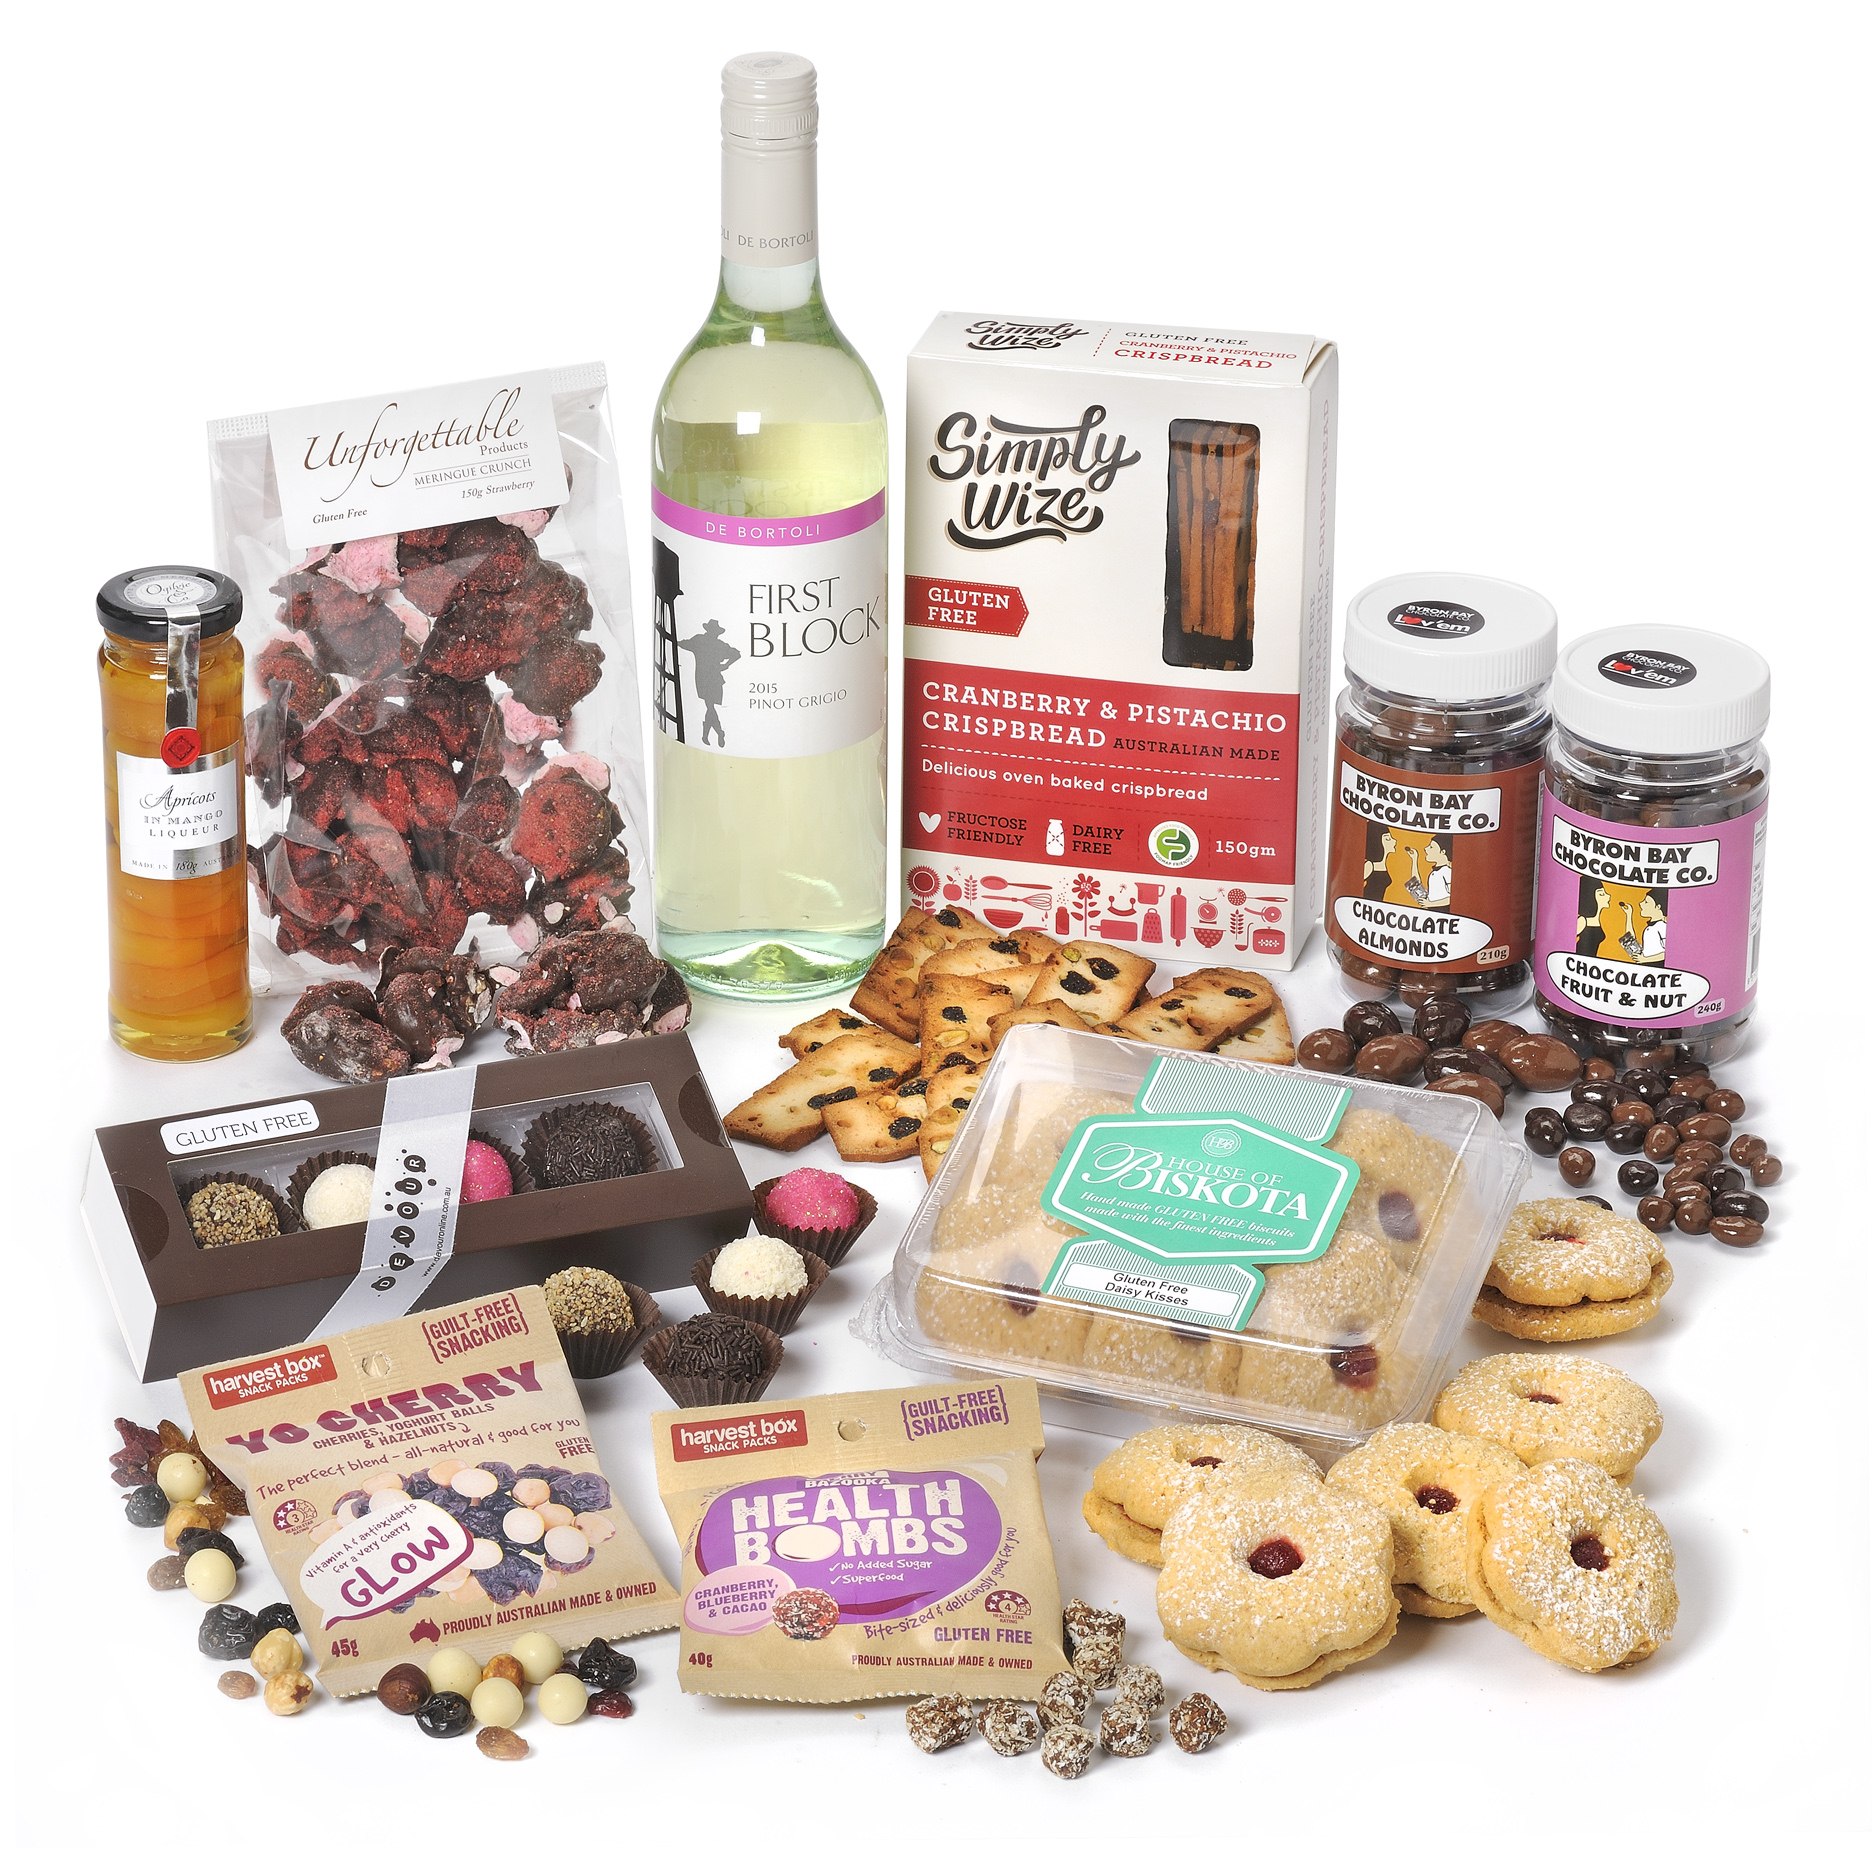 Gluten free wine and treats gourmet gift hamper gluten free wine treats negle Images